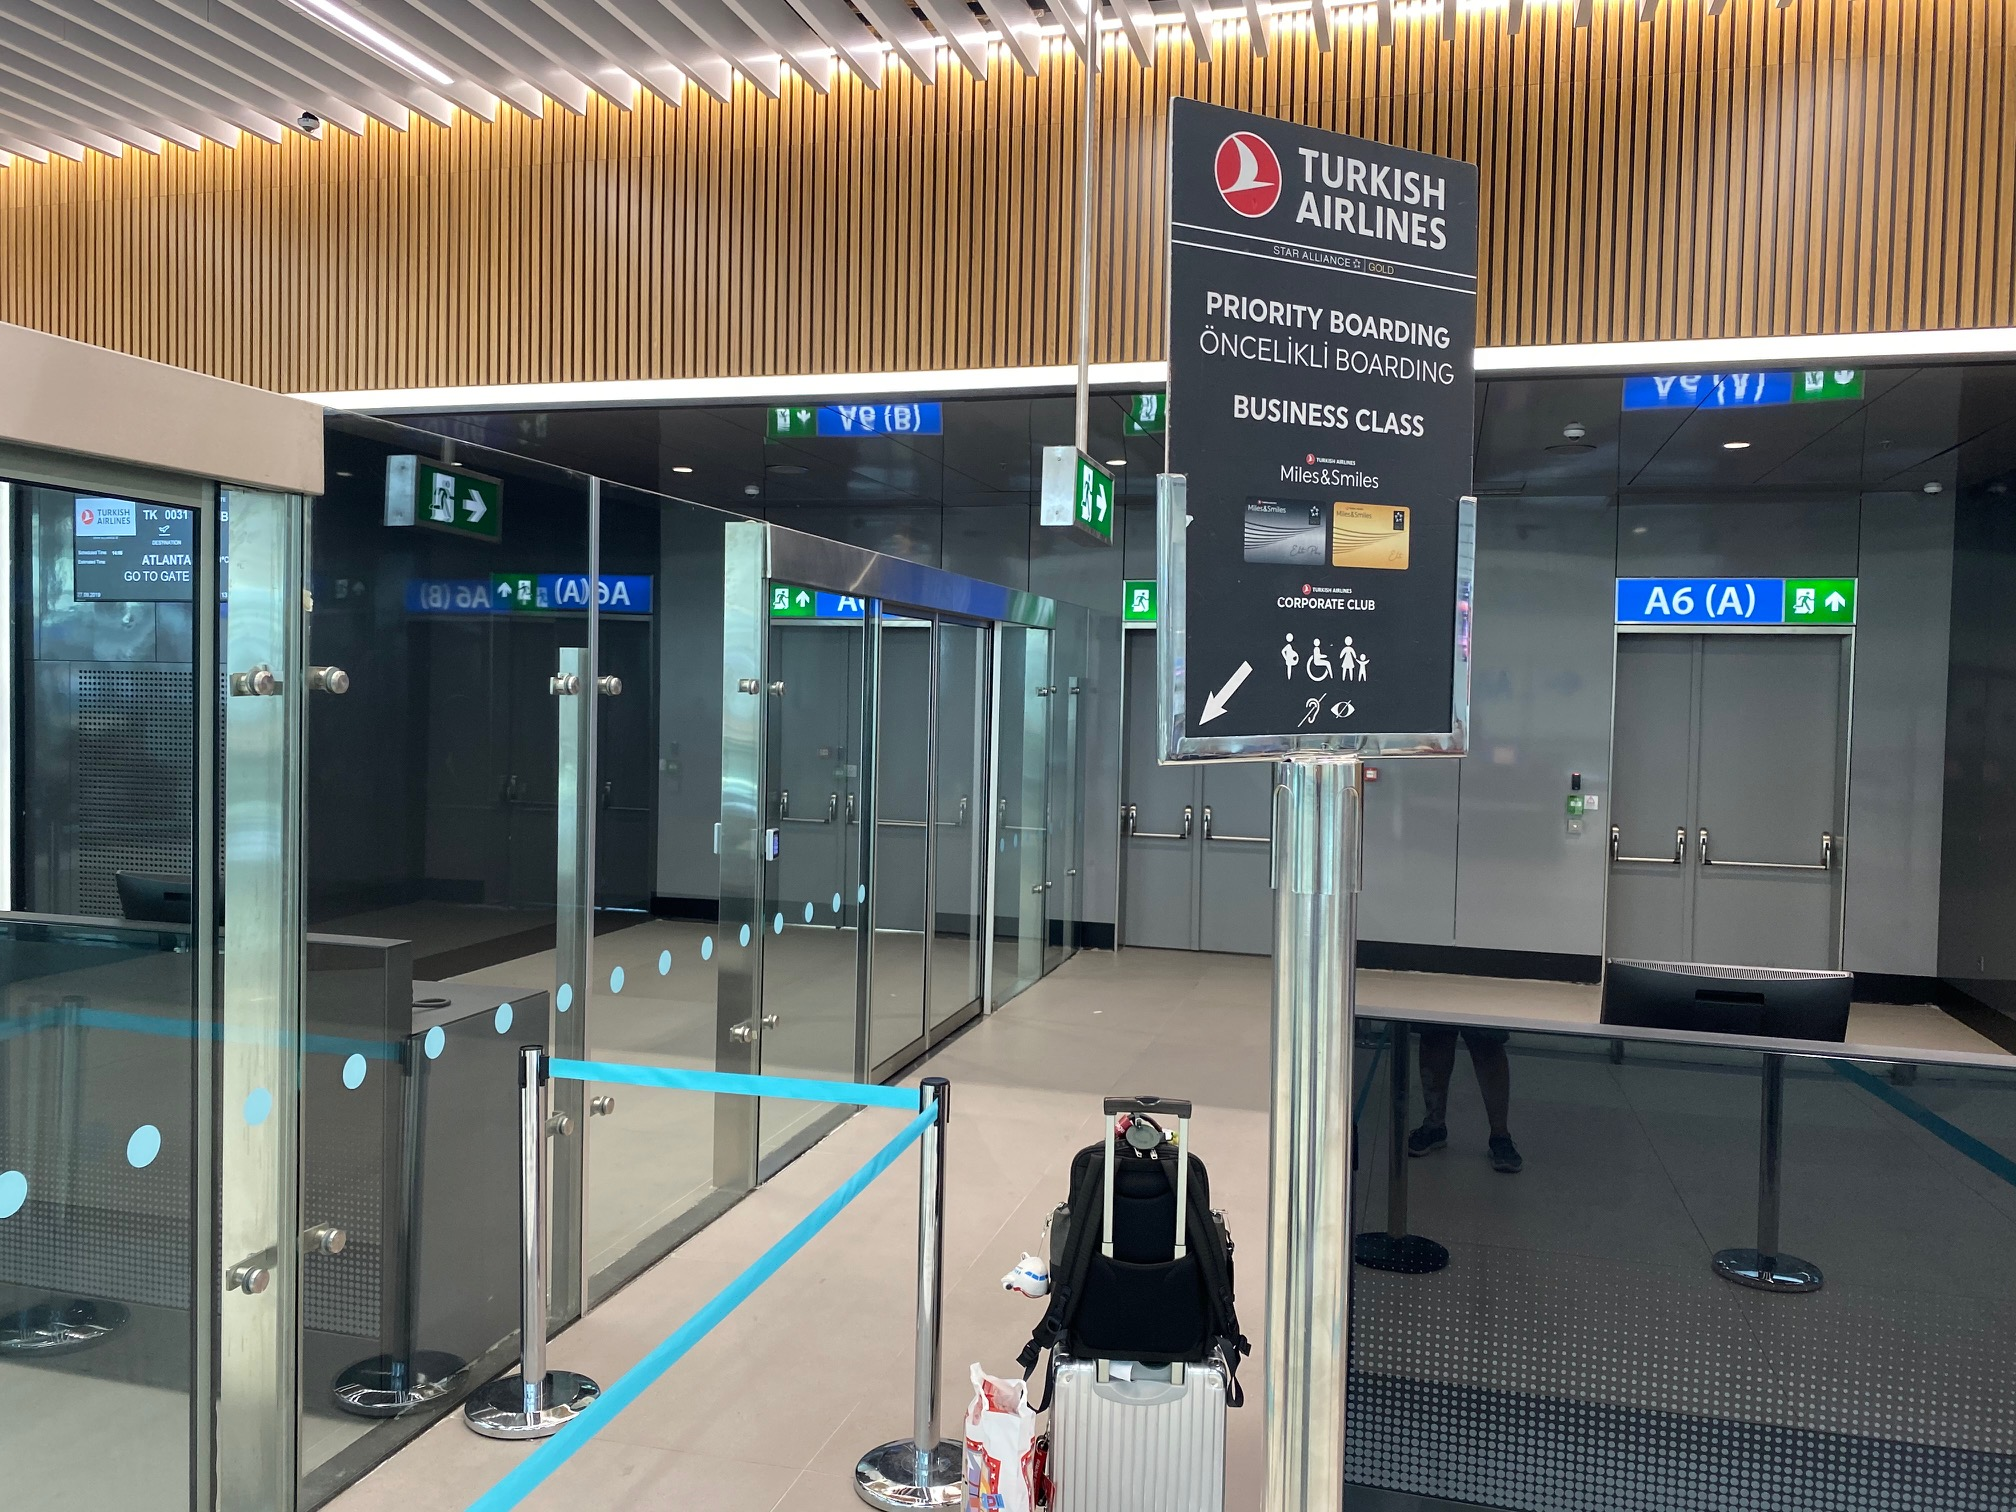 Turkish Airlines Priority Boarding - Istanbul Airport